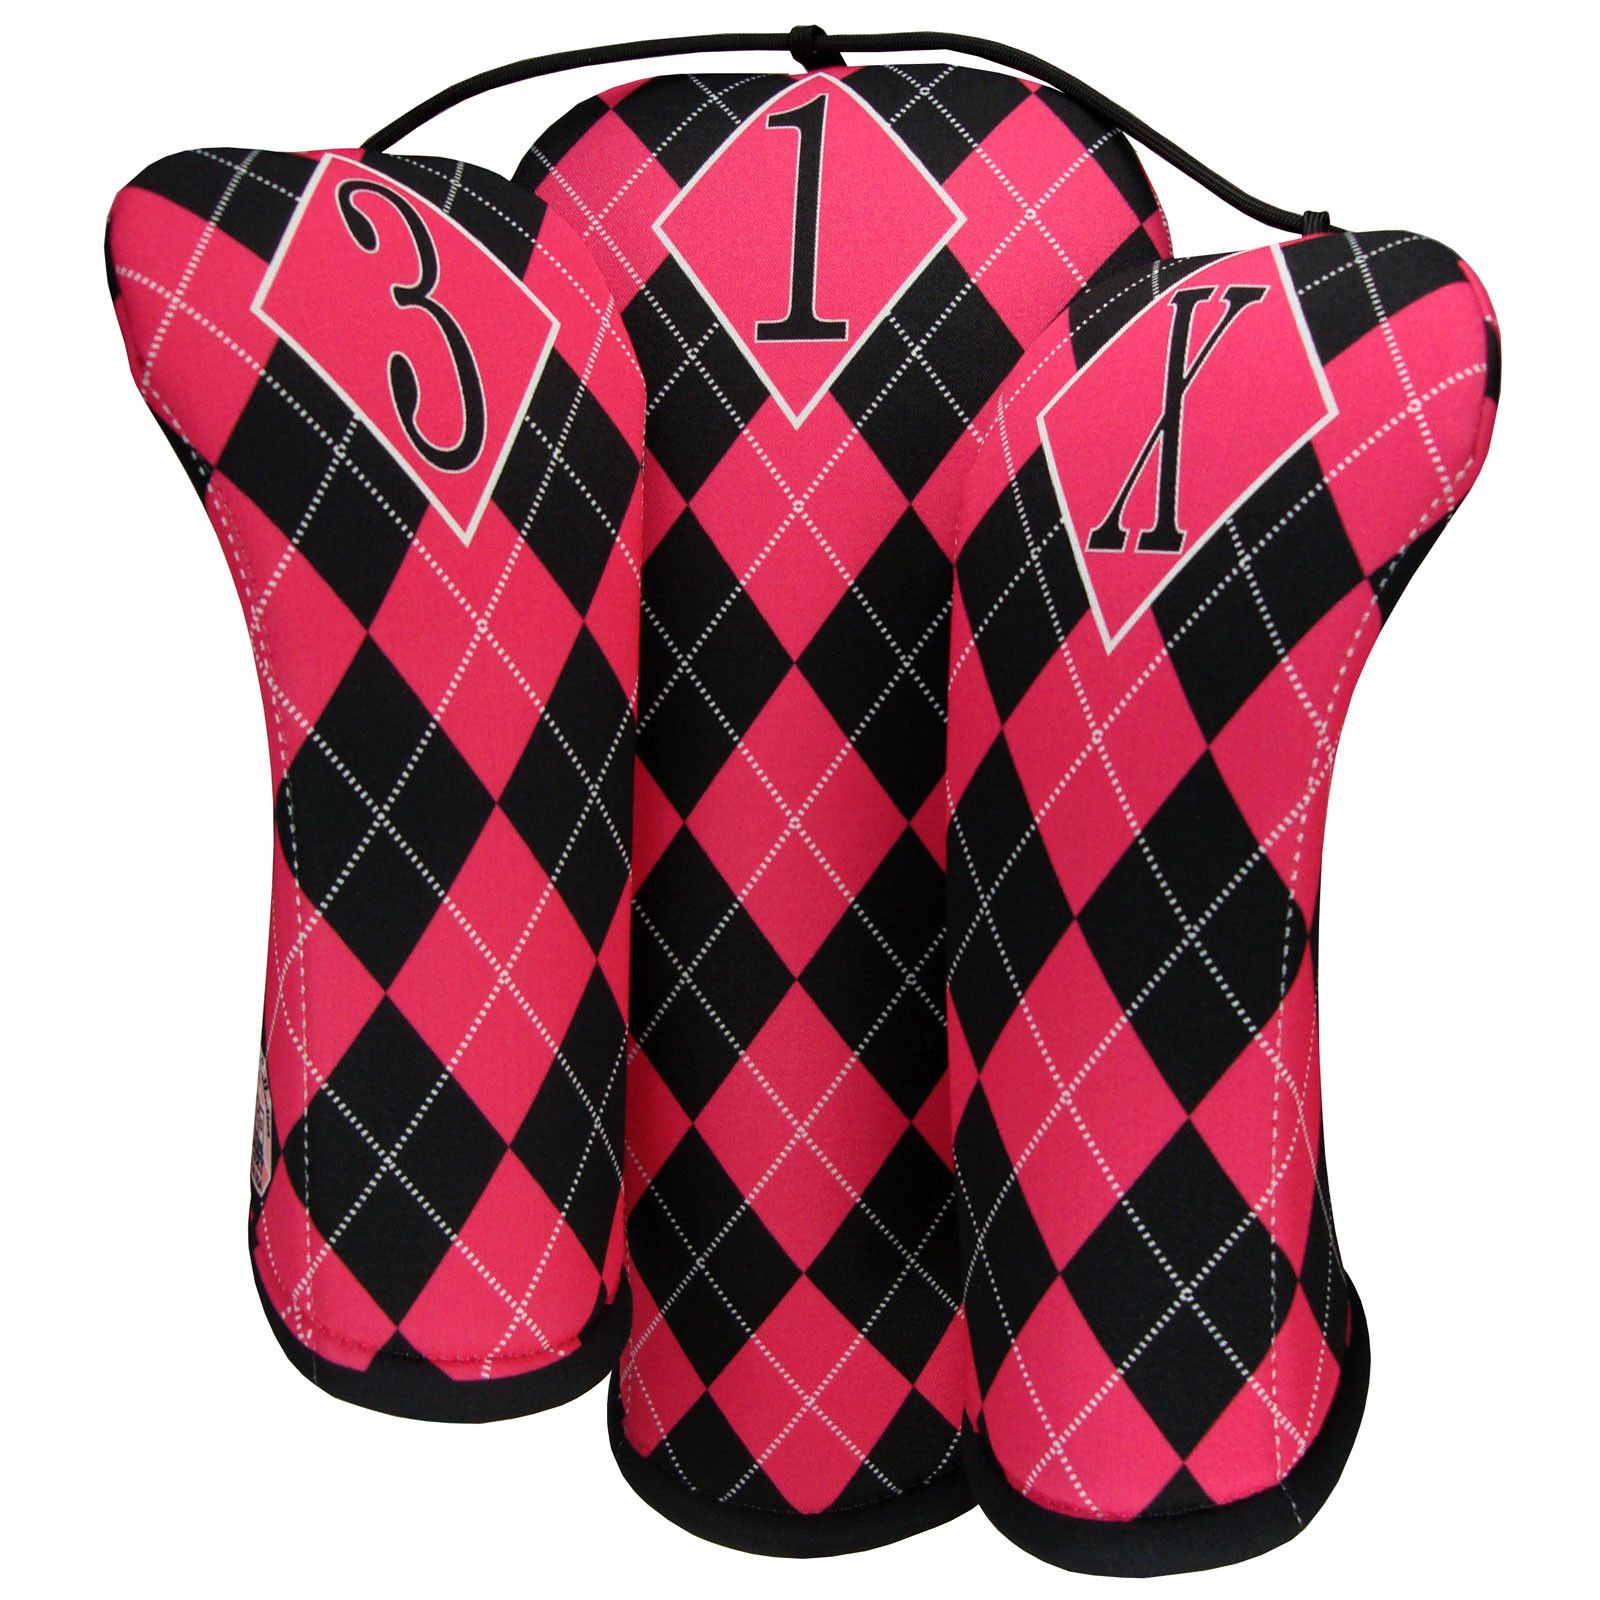 Pink Argyle Golf Club Covers Womens Golf Fashion Golf Outfits Women Golf Outfit